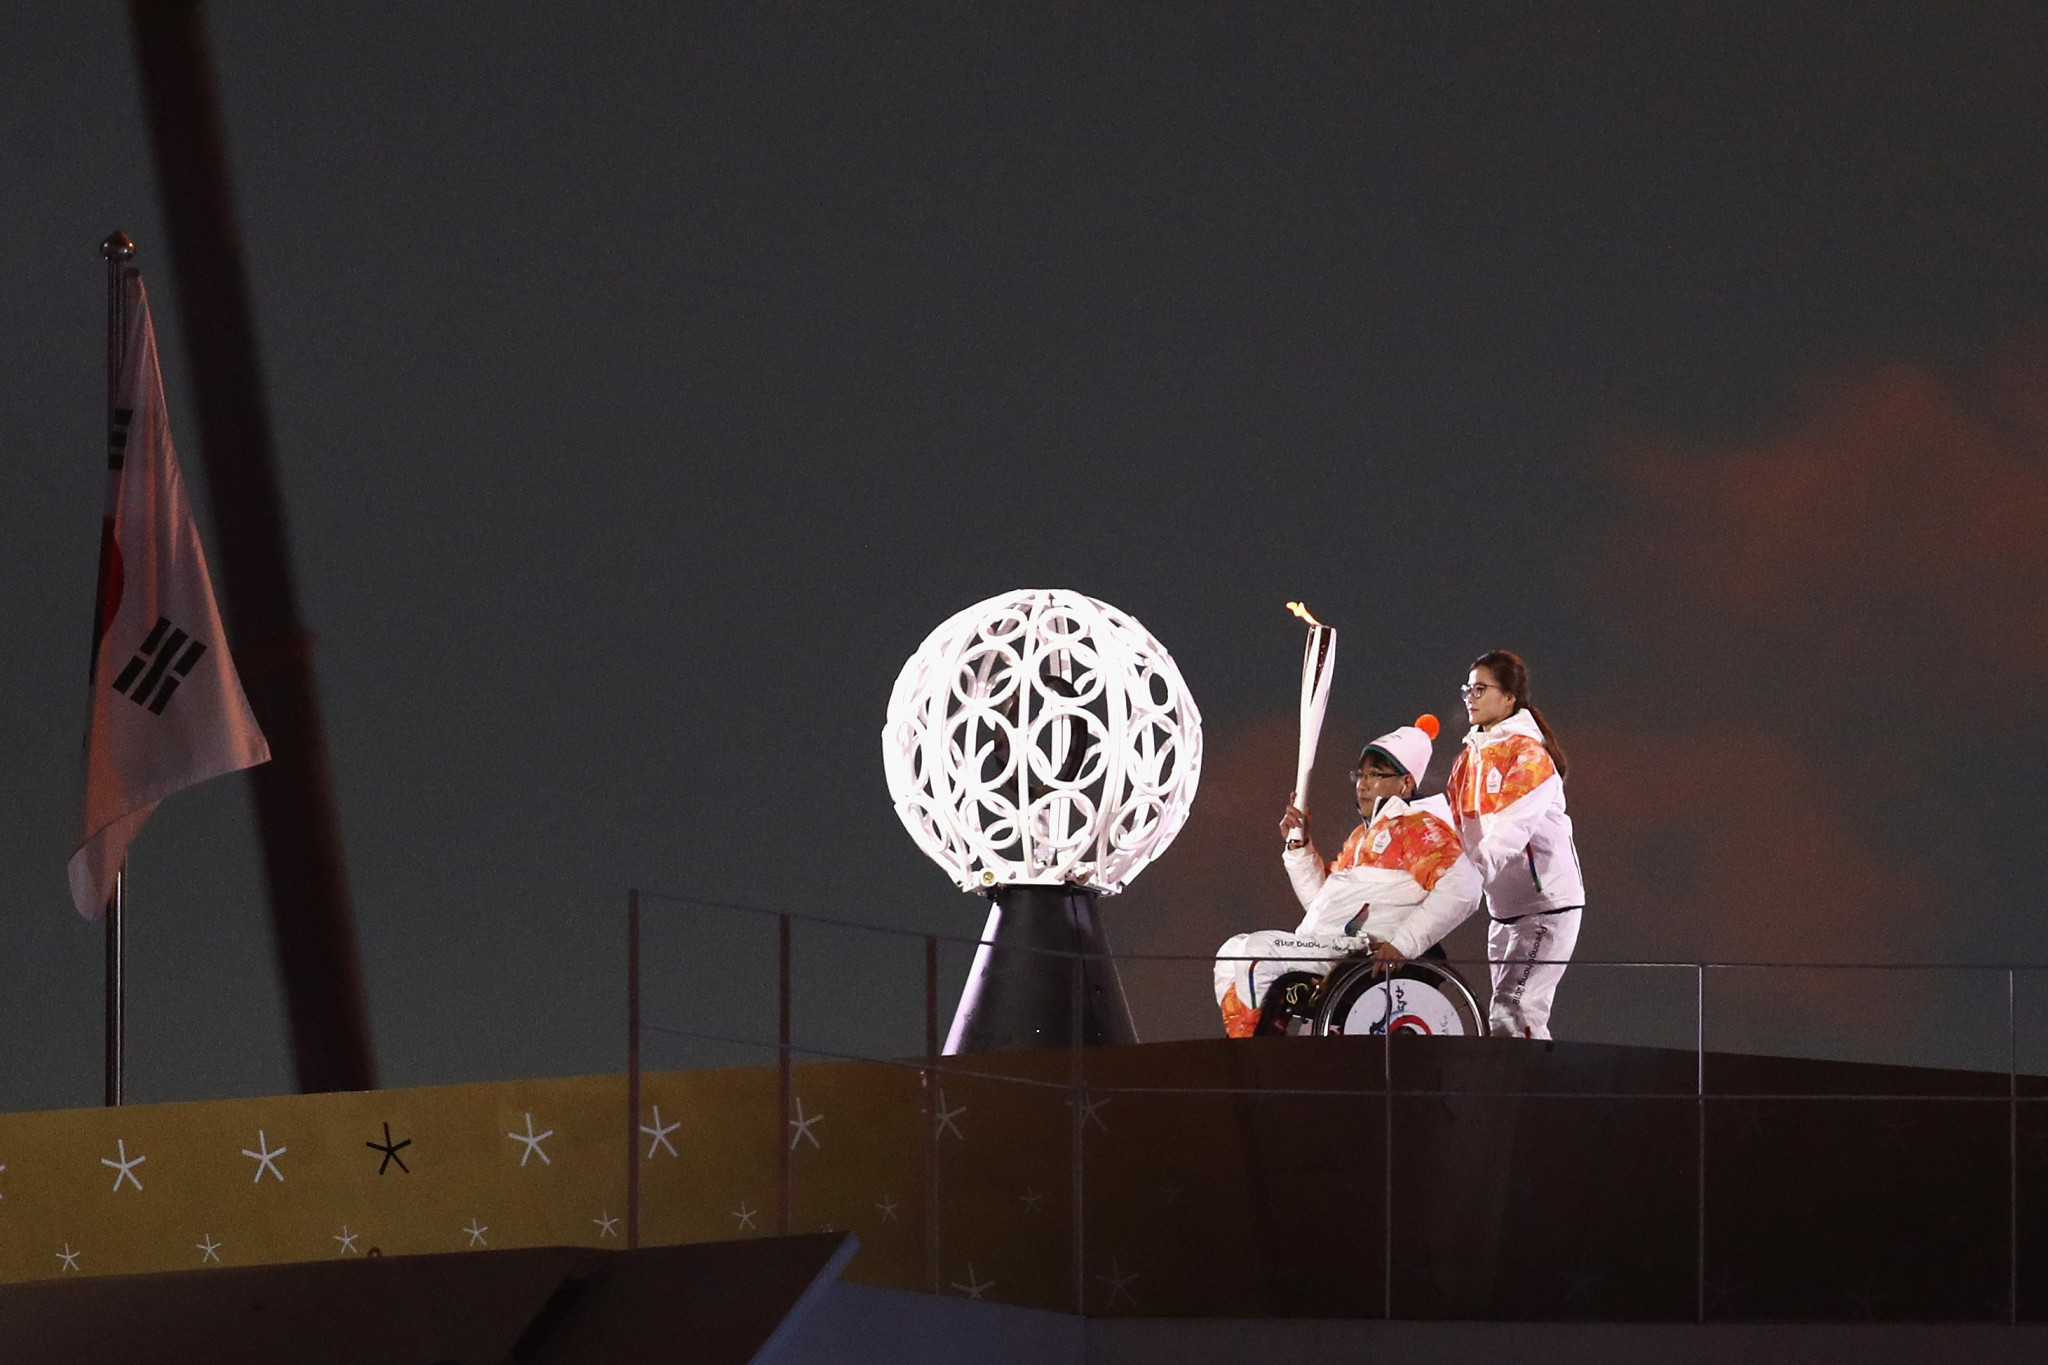 Pyeongchang 2018 Paralympic Cauldron lighters chosen just hours before Opening Ceremony